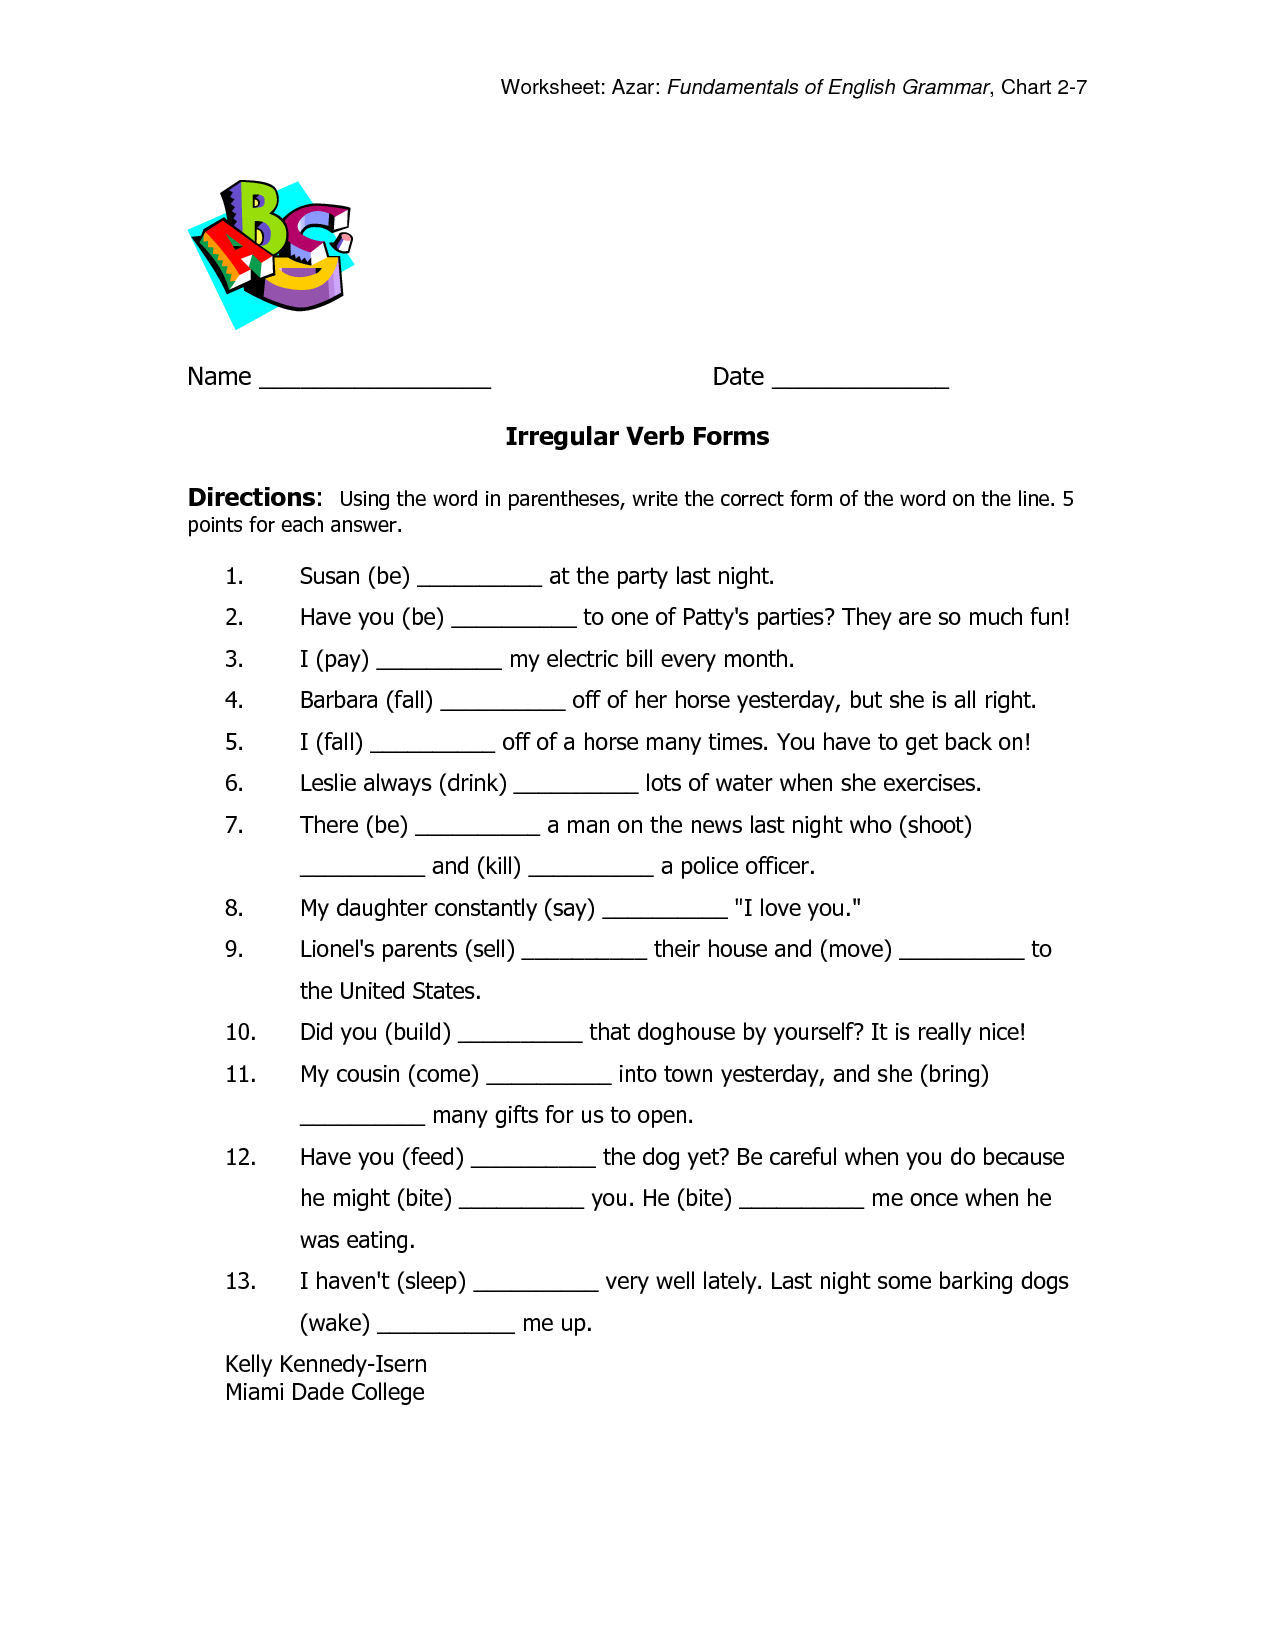 Irregular Past Tense Verbs Worksheet Ks2